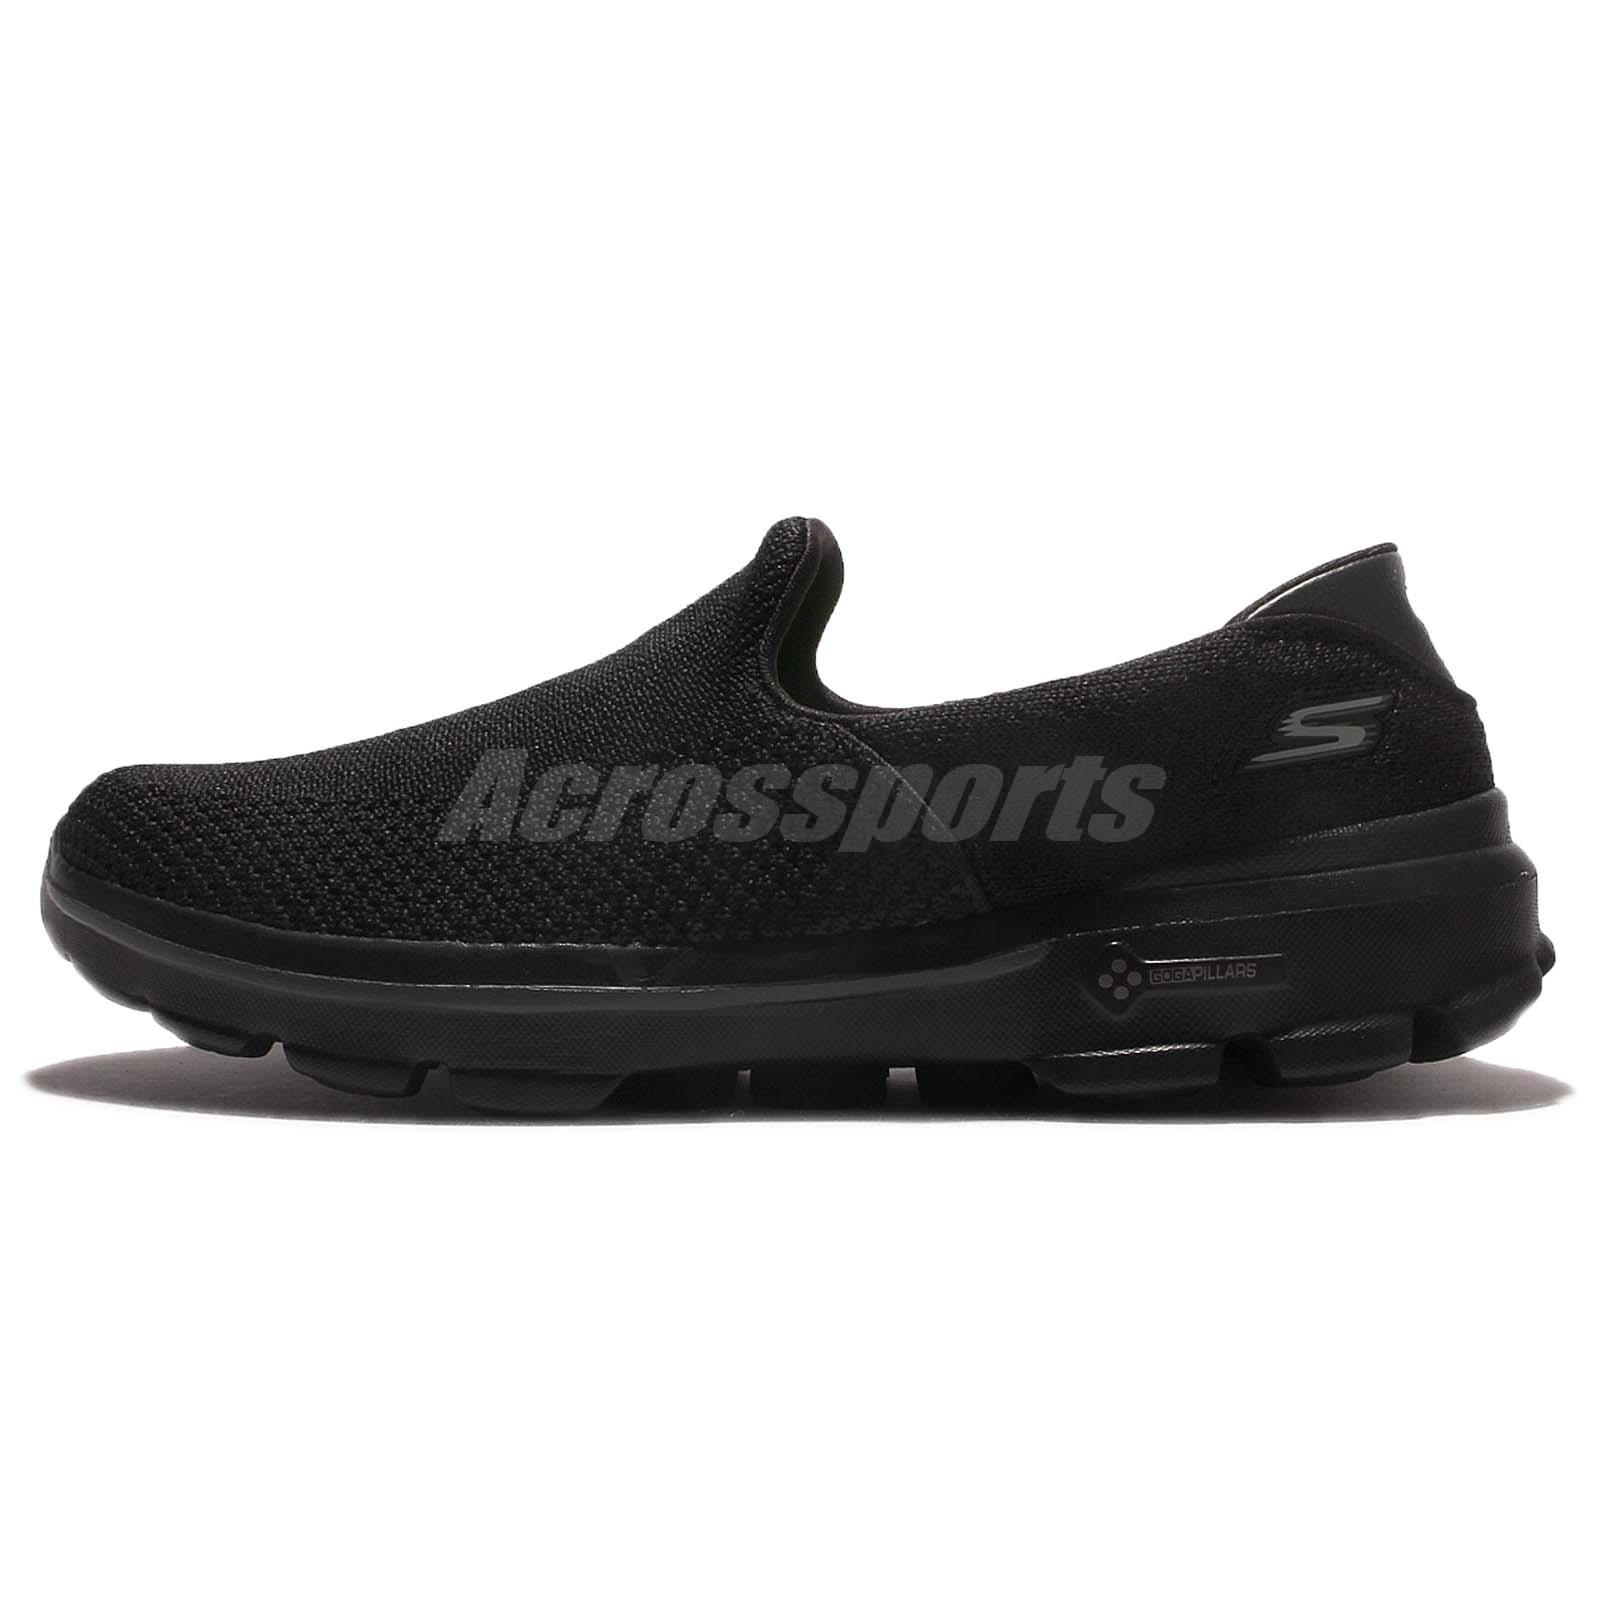 5e94cfe4729b skechers go walk 3 mens black sale   OFF65% Discounted